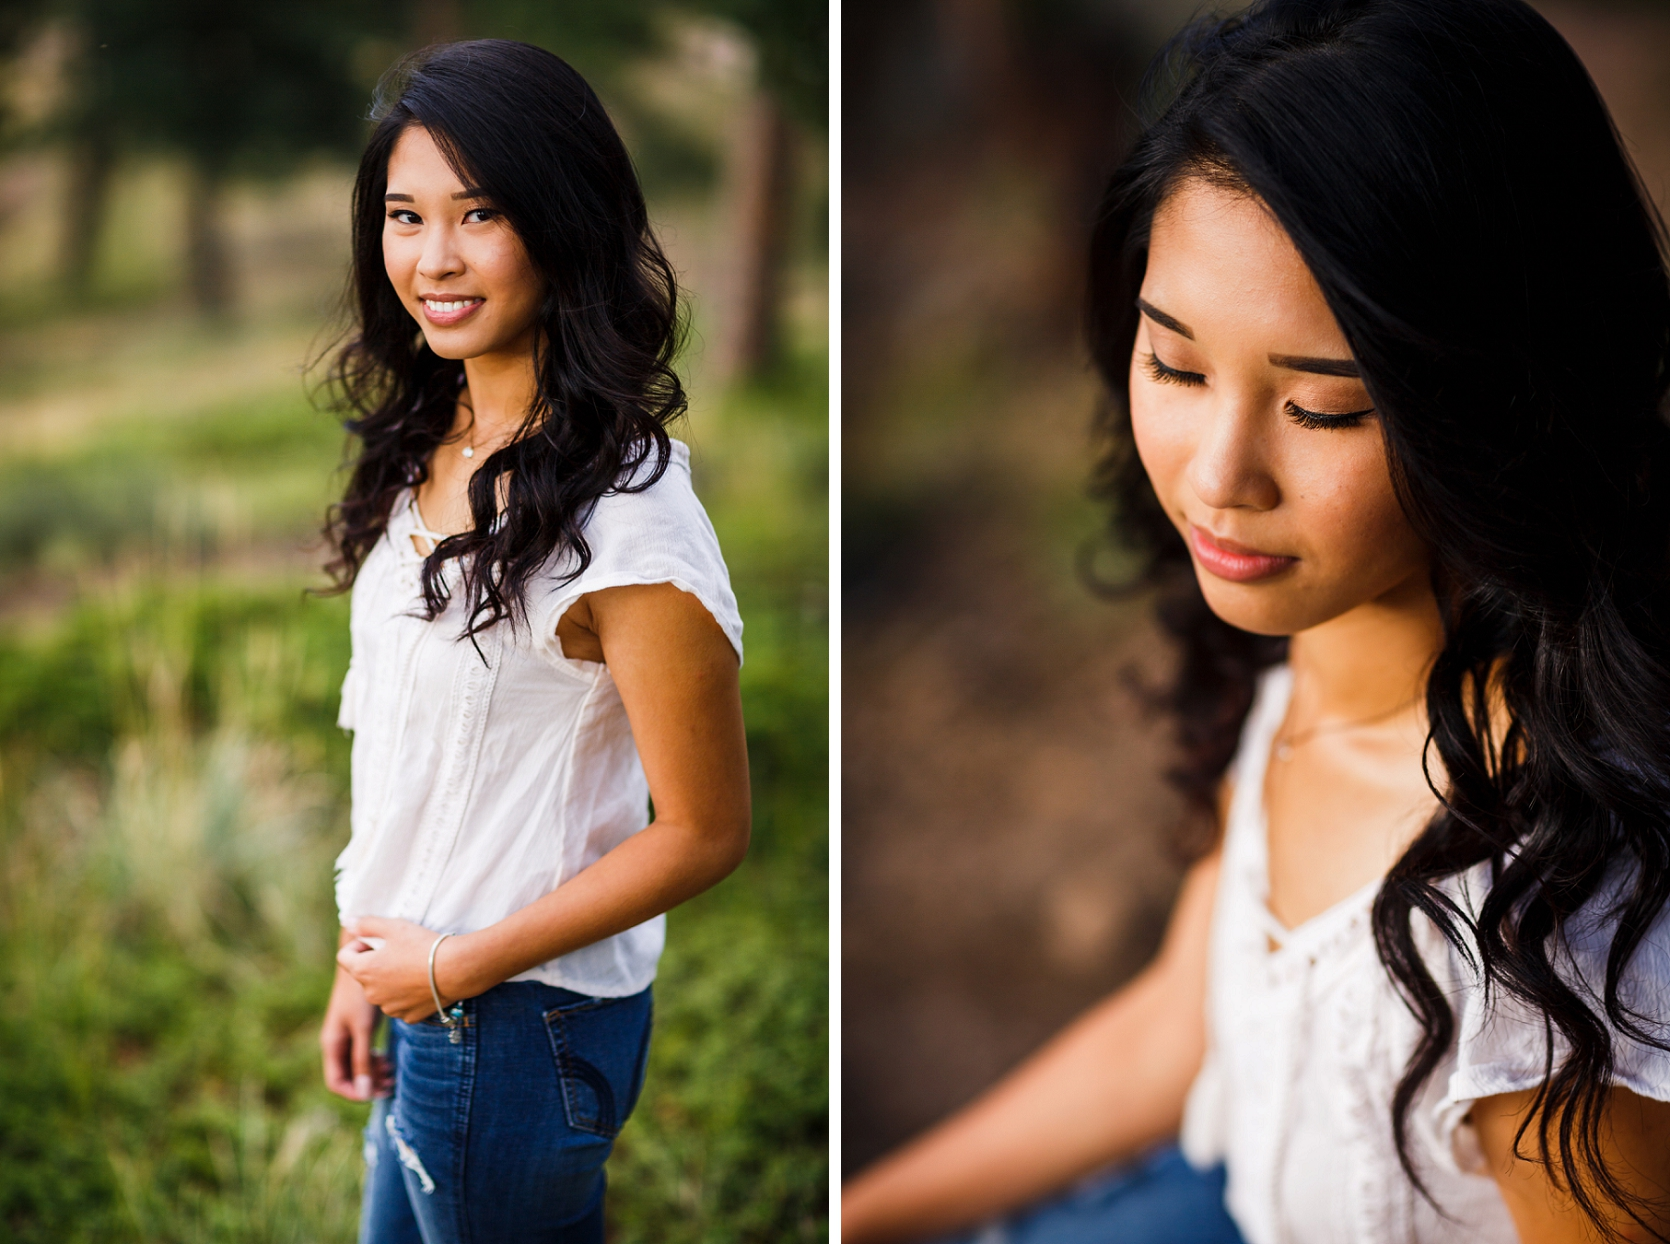 Boulder_Senior_Portrait_Session_0016